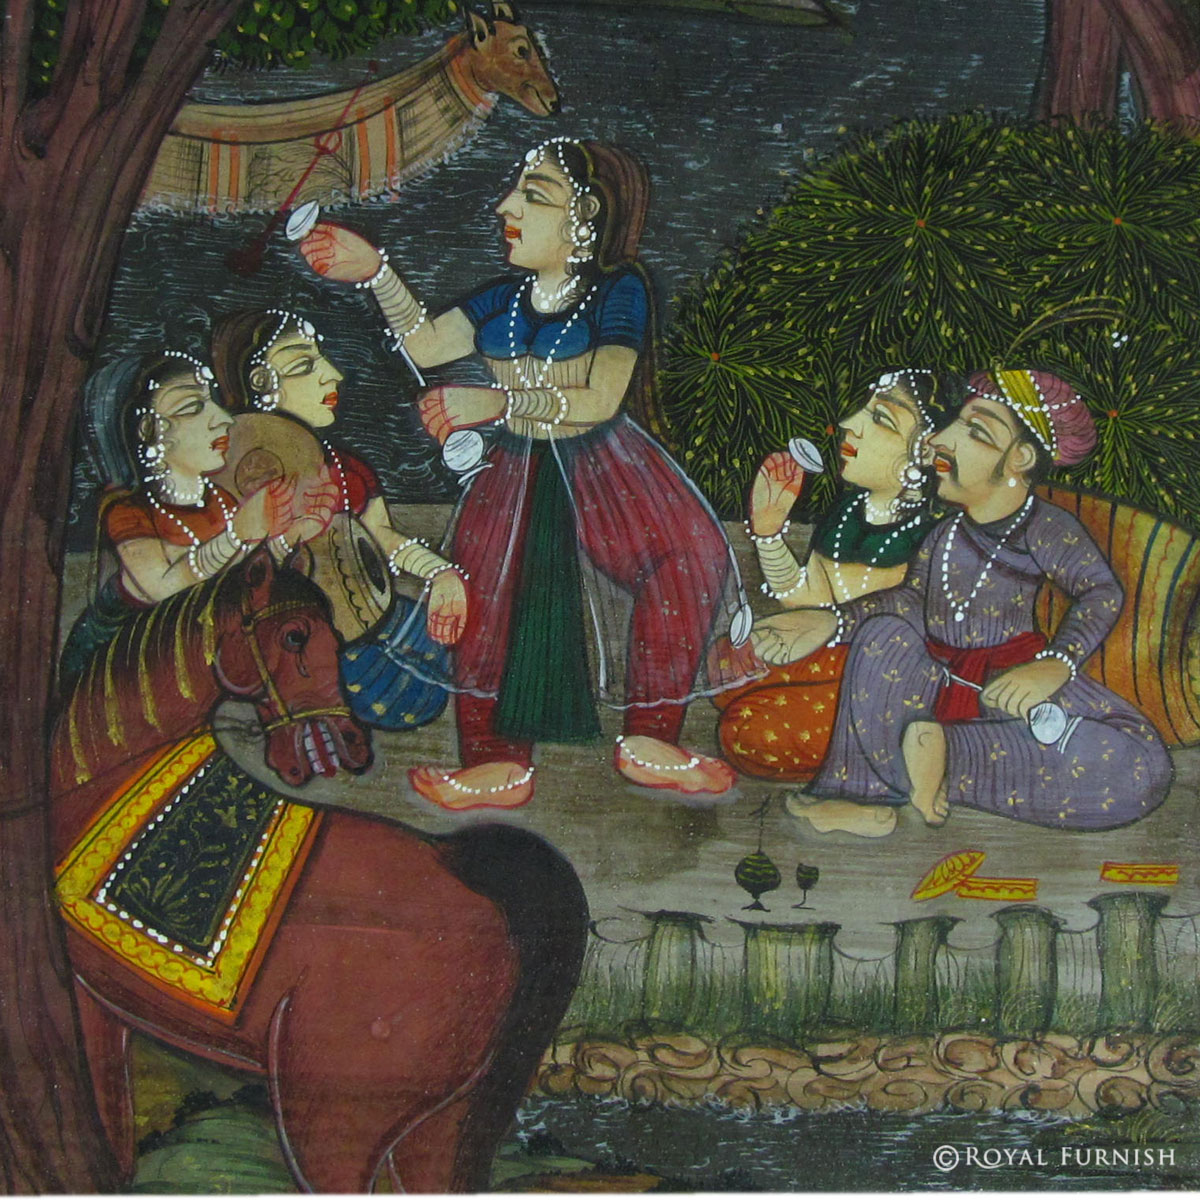 Mughal King Love Scene Rajasthani Miniature Painting Wall Art: home decor paintings for sale india